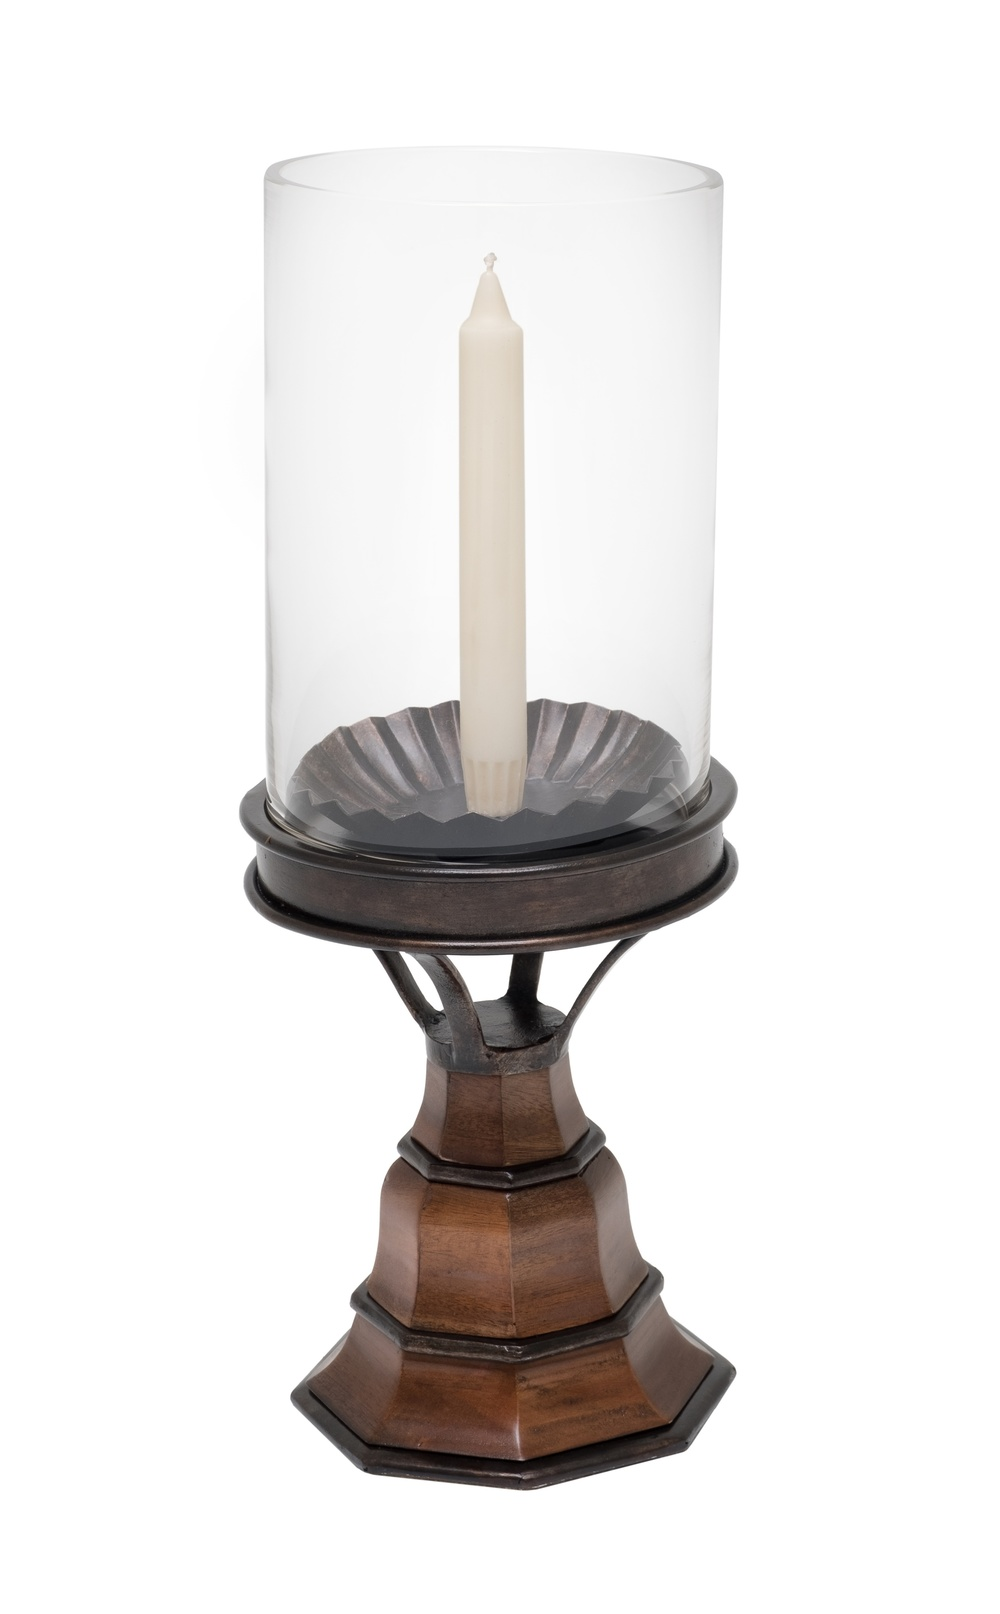 Hickory Chair - Osterville Candle Holder